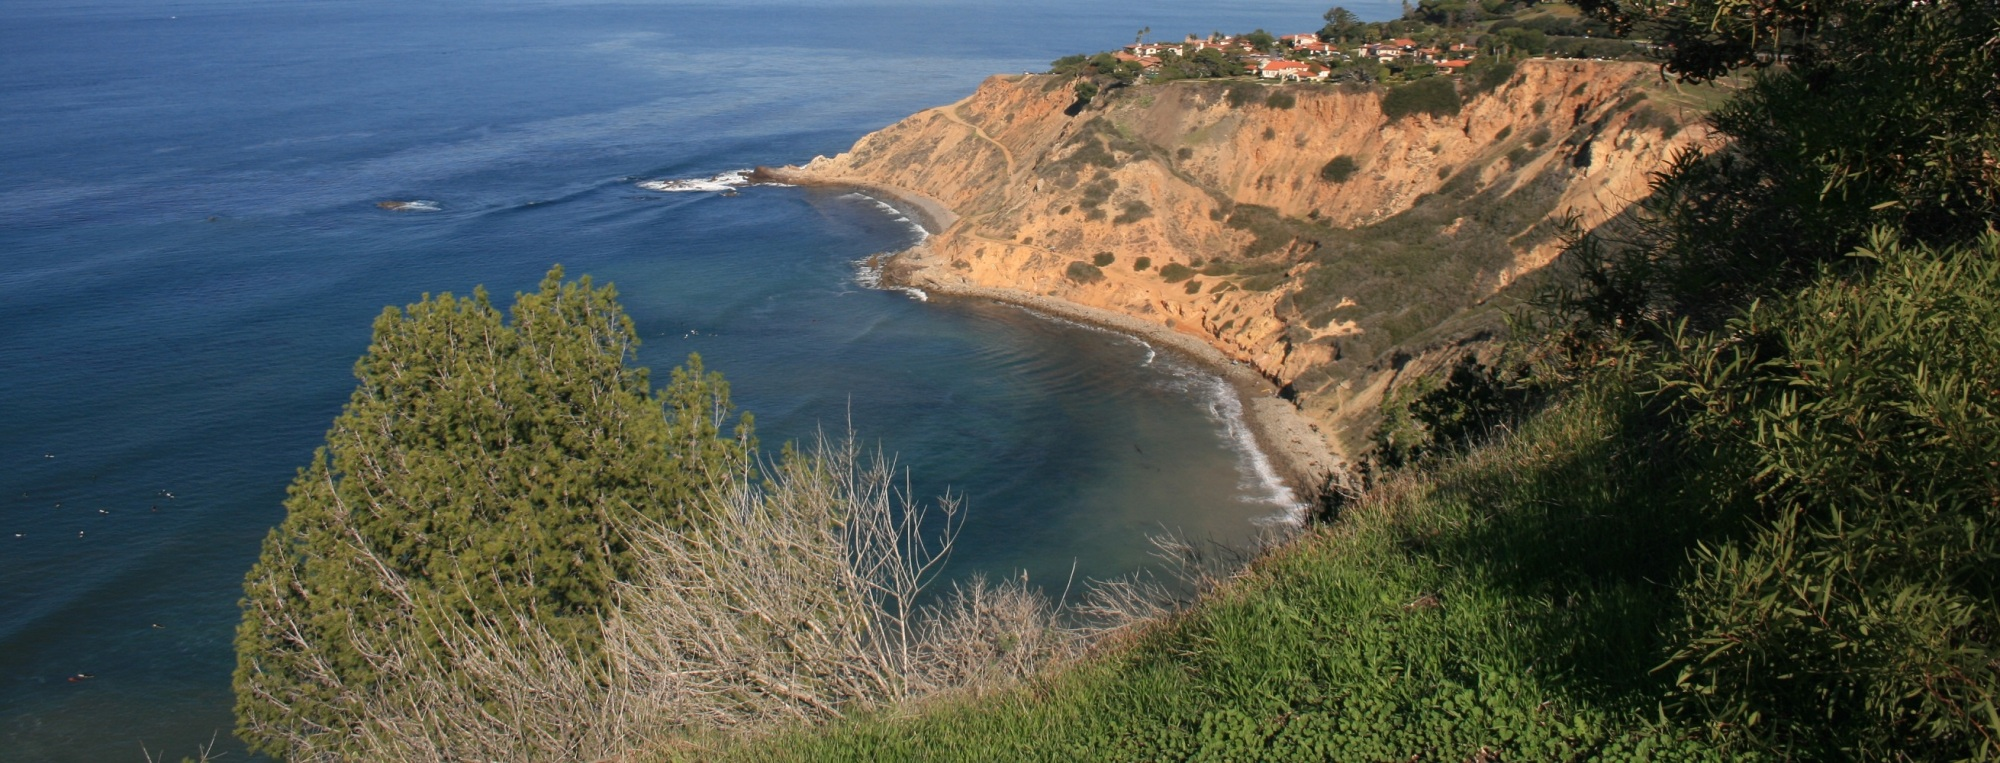 Bluff Cove as seen from the Apsley Trail, Palos Verdes Peninsula, CA